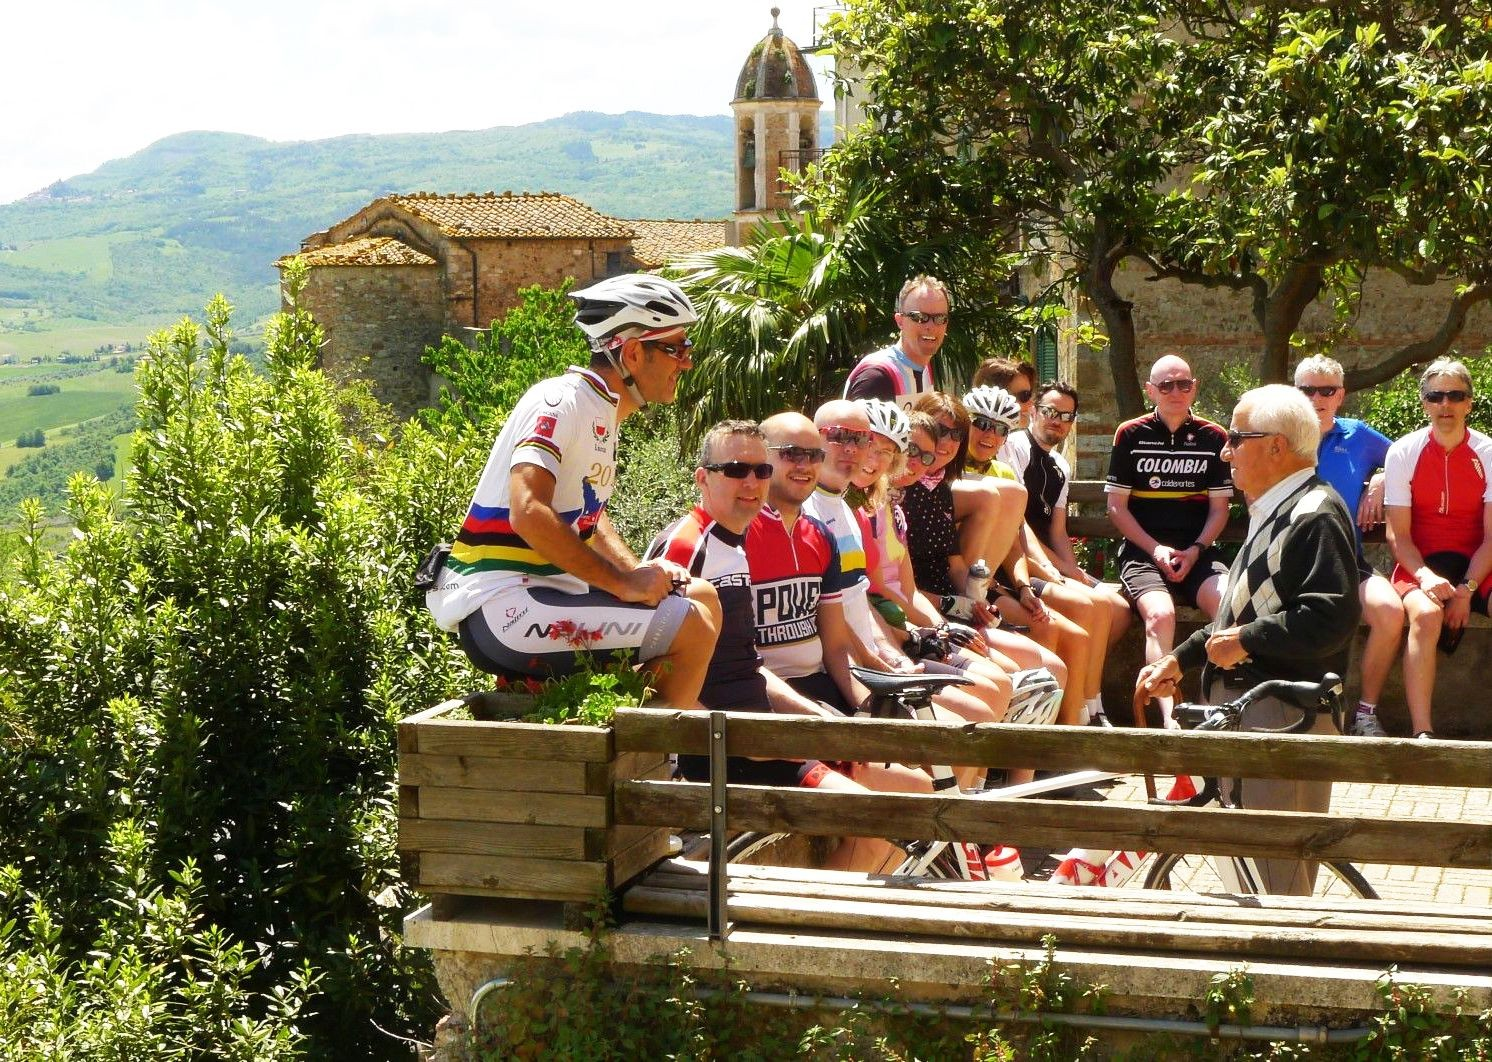 guided-group-cycling-holiday-tuscany-italy.jpg - Italy - Tuscany Tourer - Road Cycling